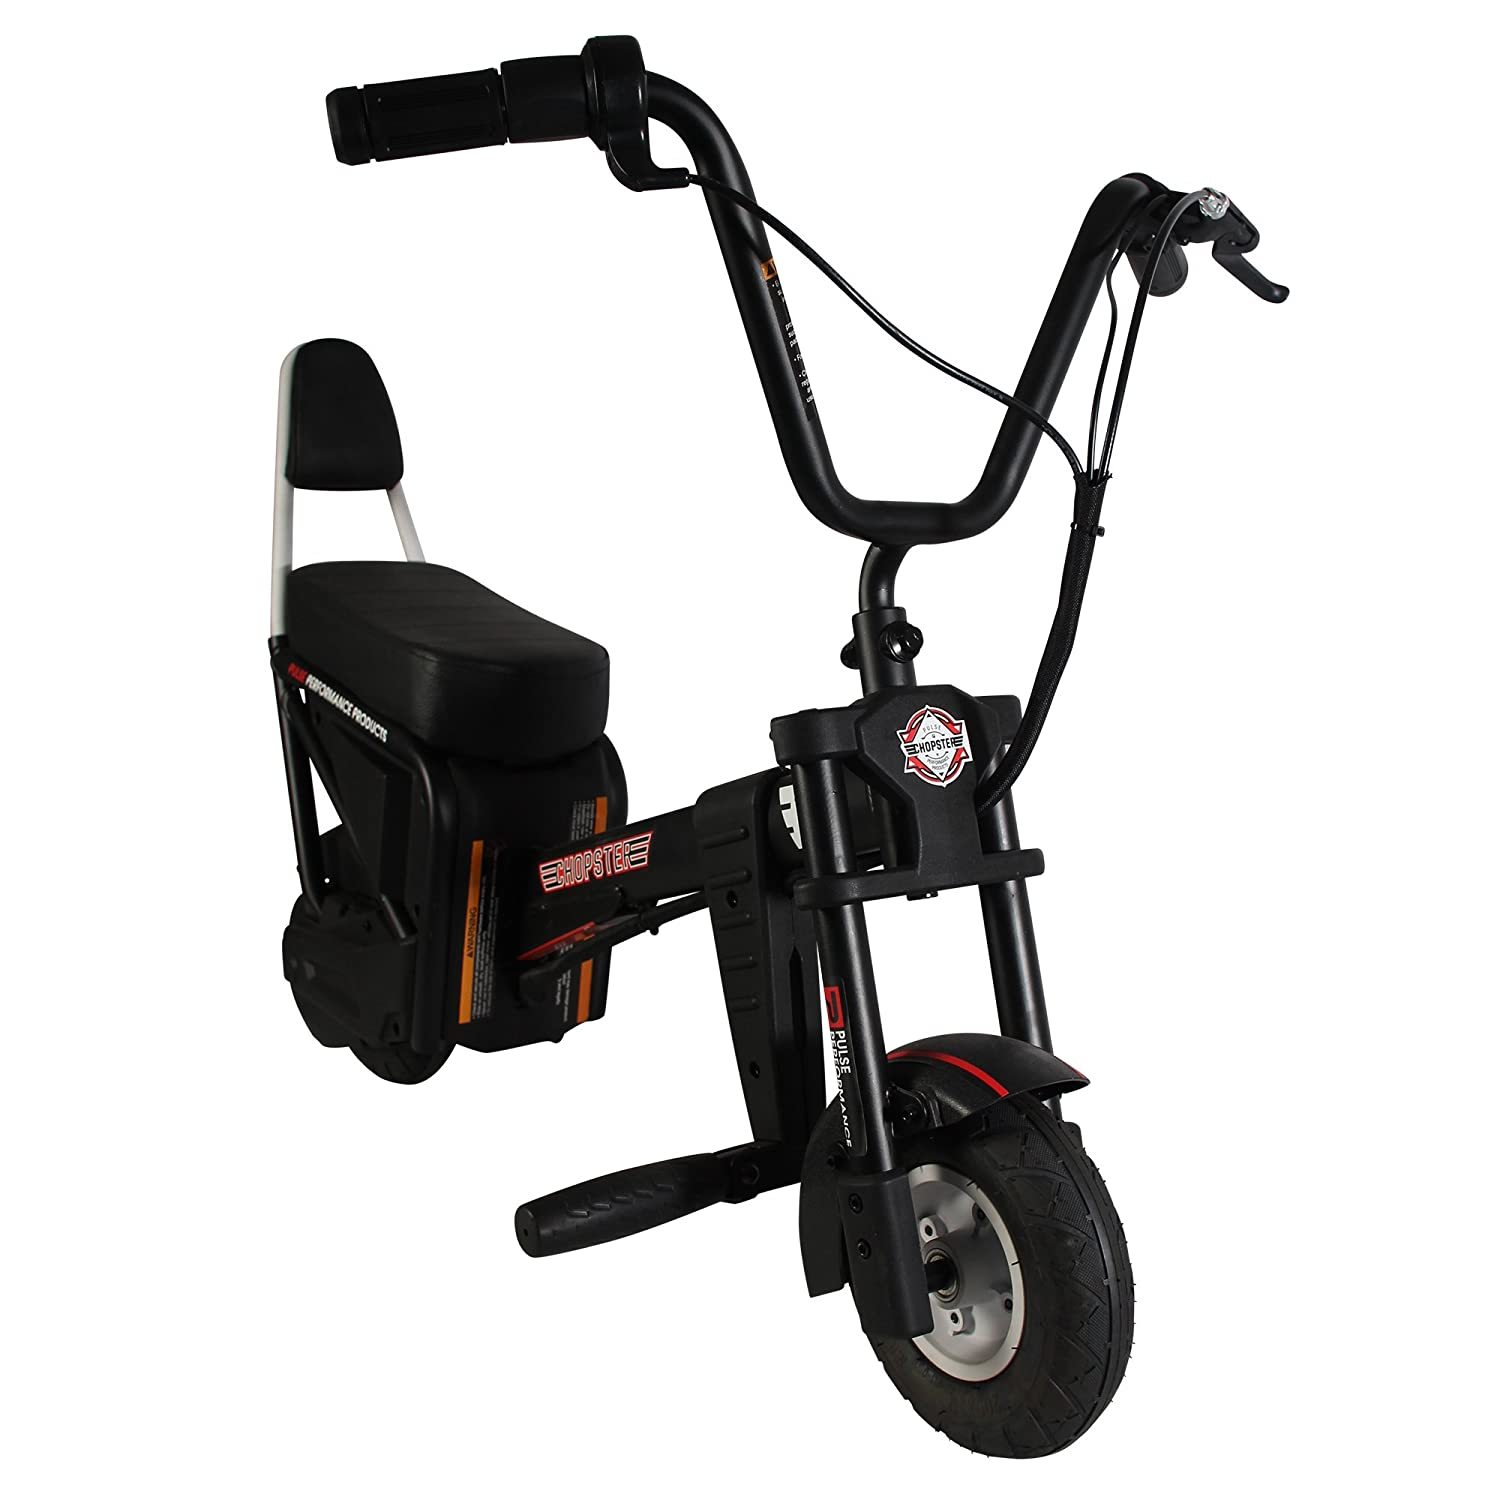 Pulse Performance Products Chopster E-Motorcycle - 24 Volt Electric Ride On  Bike for Kids - Black